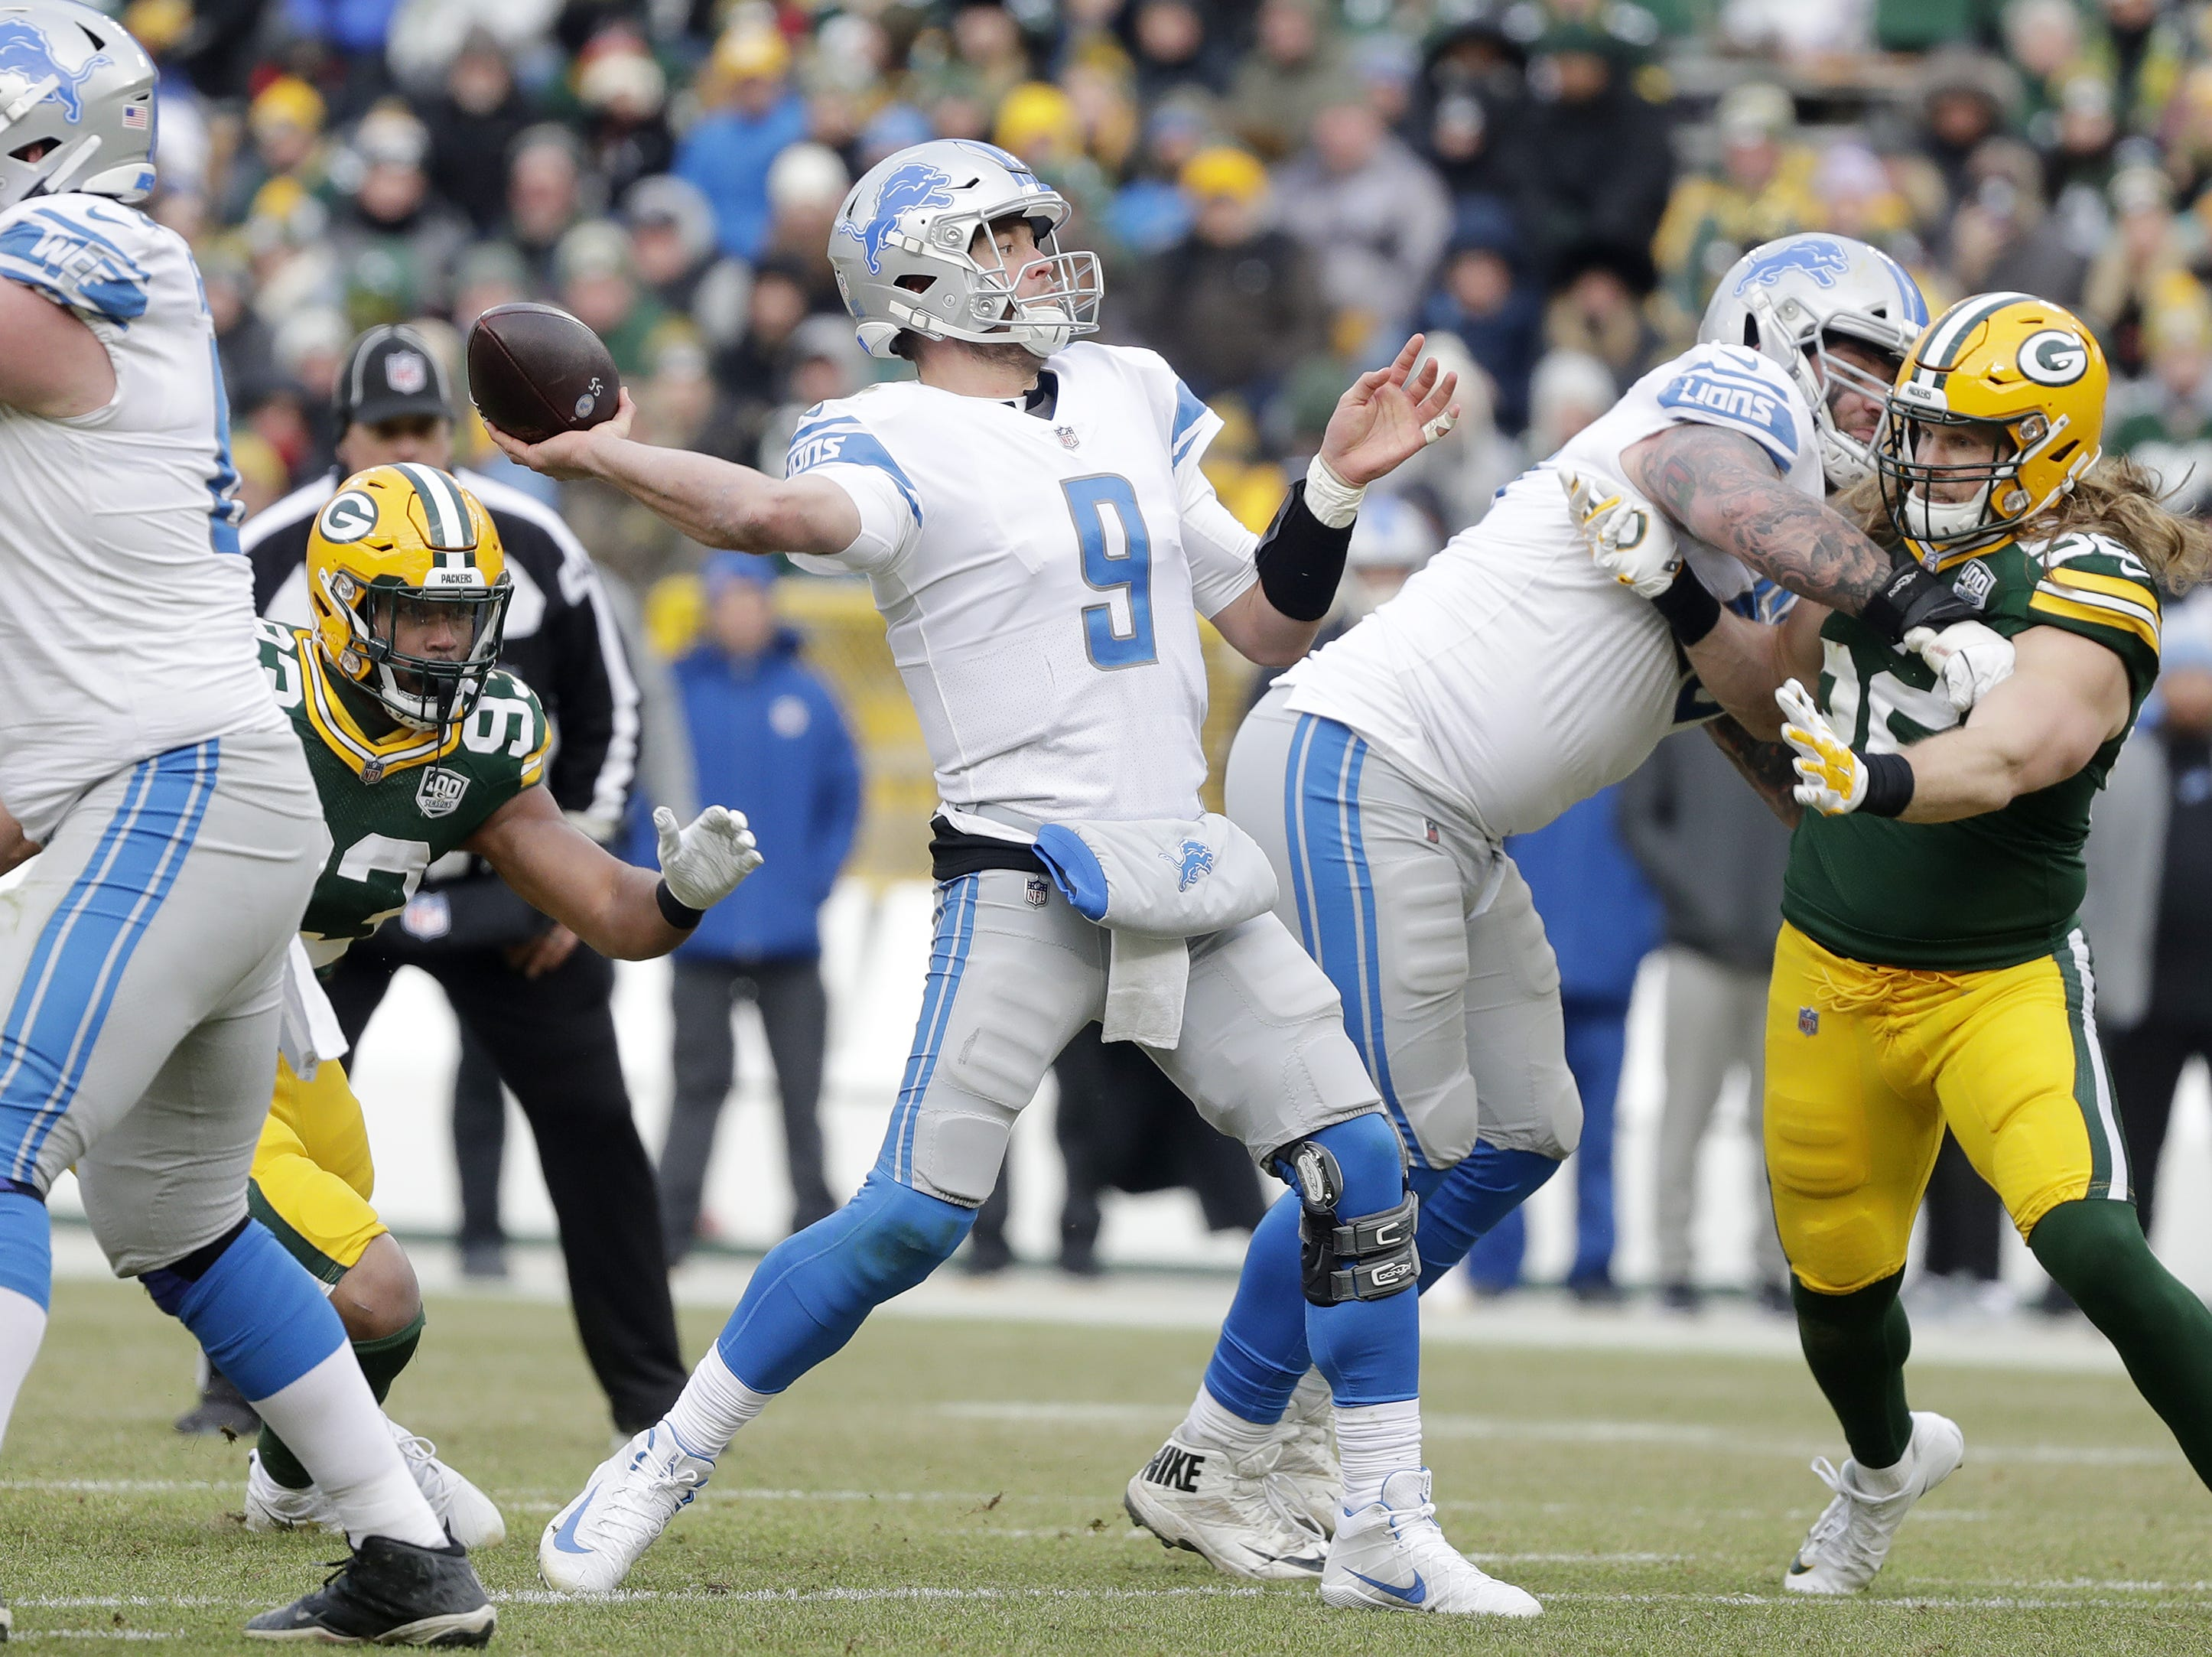 Detroit Lions quarterback Matthew Stafford (9) throws against the Green Bay Packers in the fourth quarter at Lambeau Field on Sunday, December 30, 2018 in Green Bay, Wis. Adam Wesley/USA TODAY NETWORK-Wis